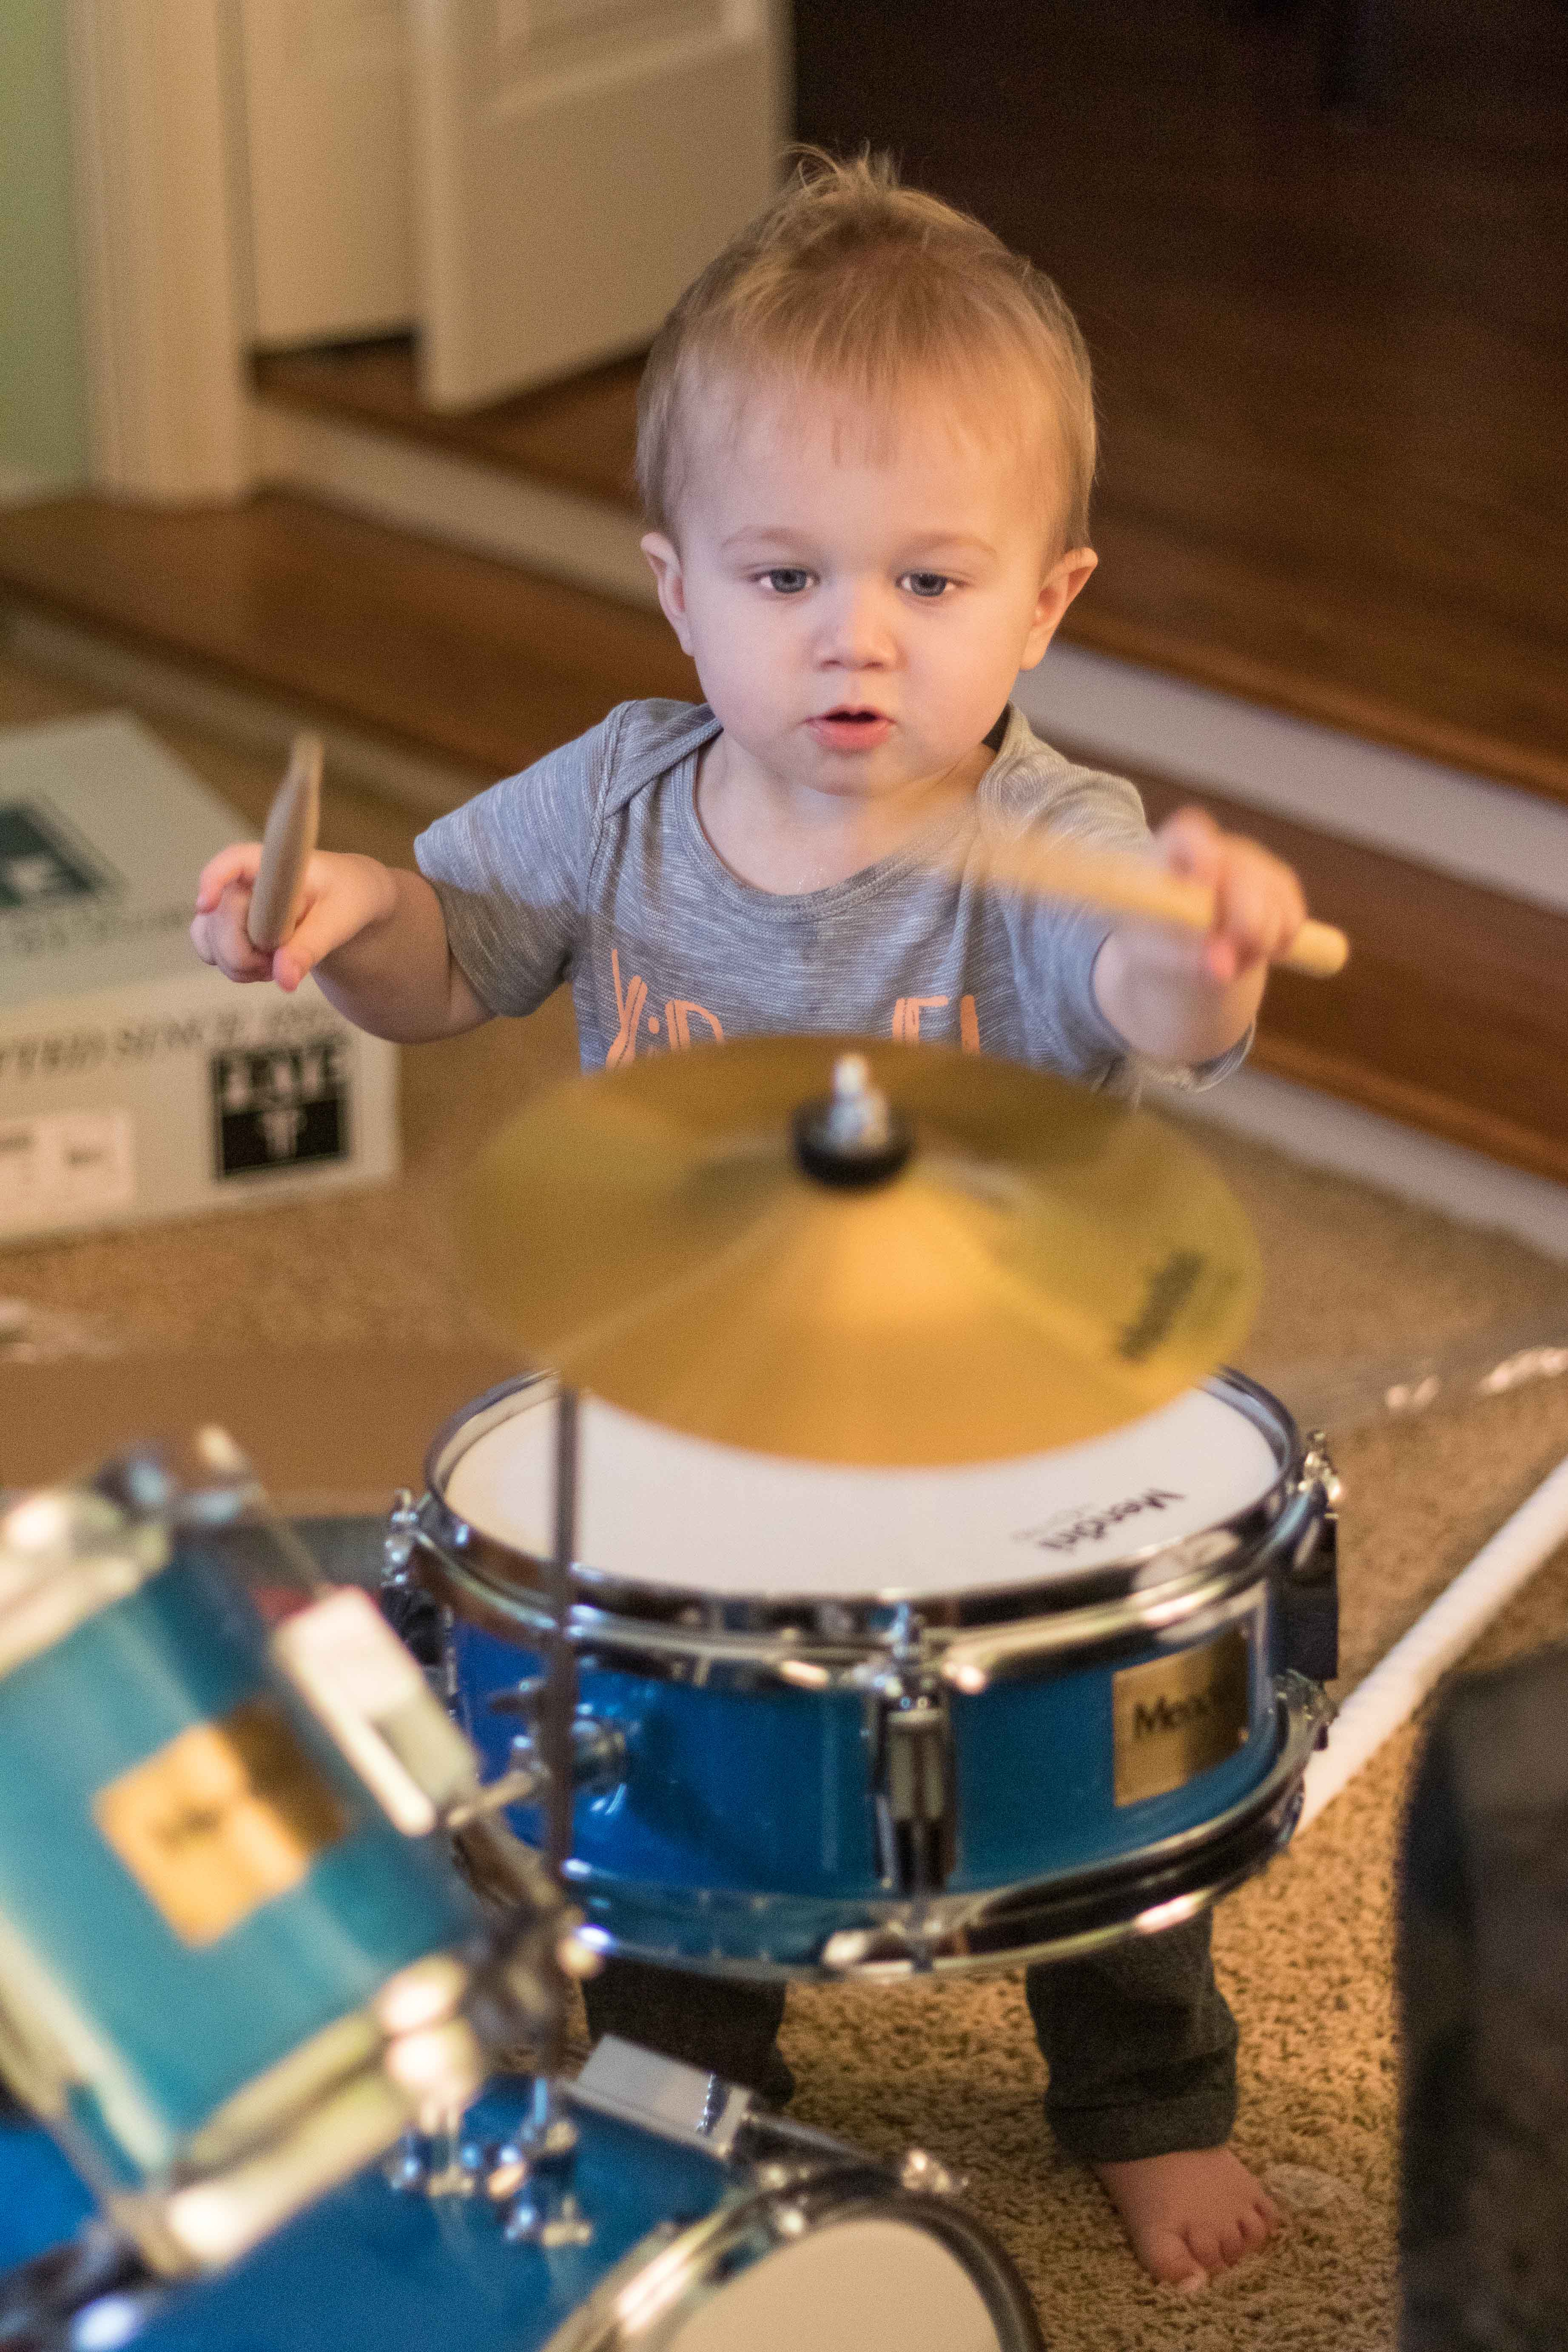 Tommy with His Drum Set | https://www.roseclearfield.com